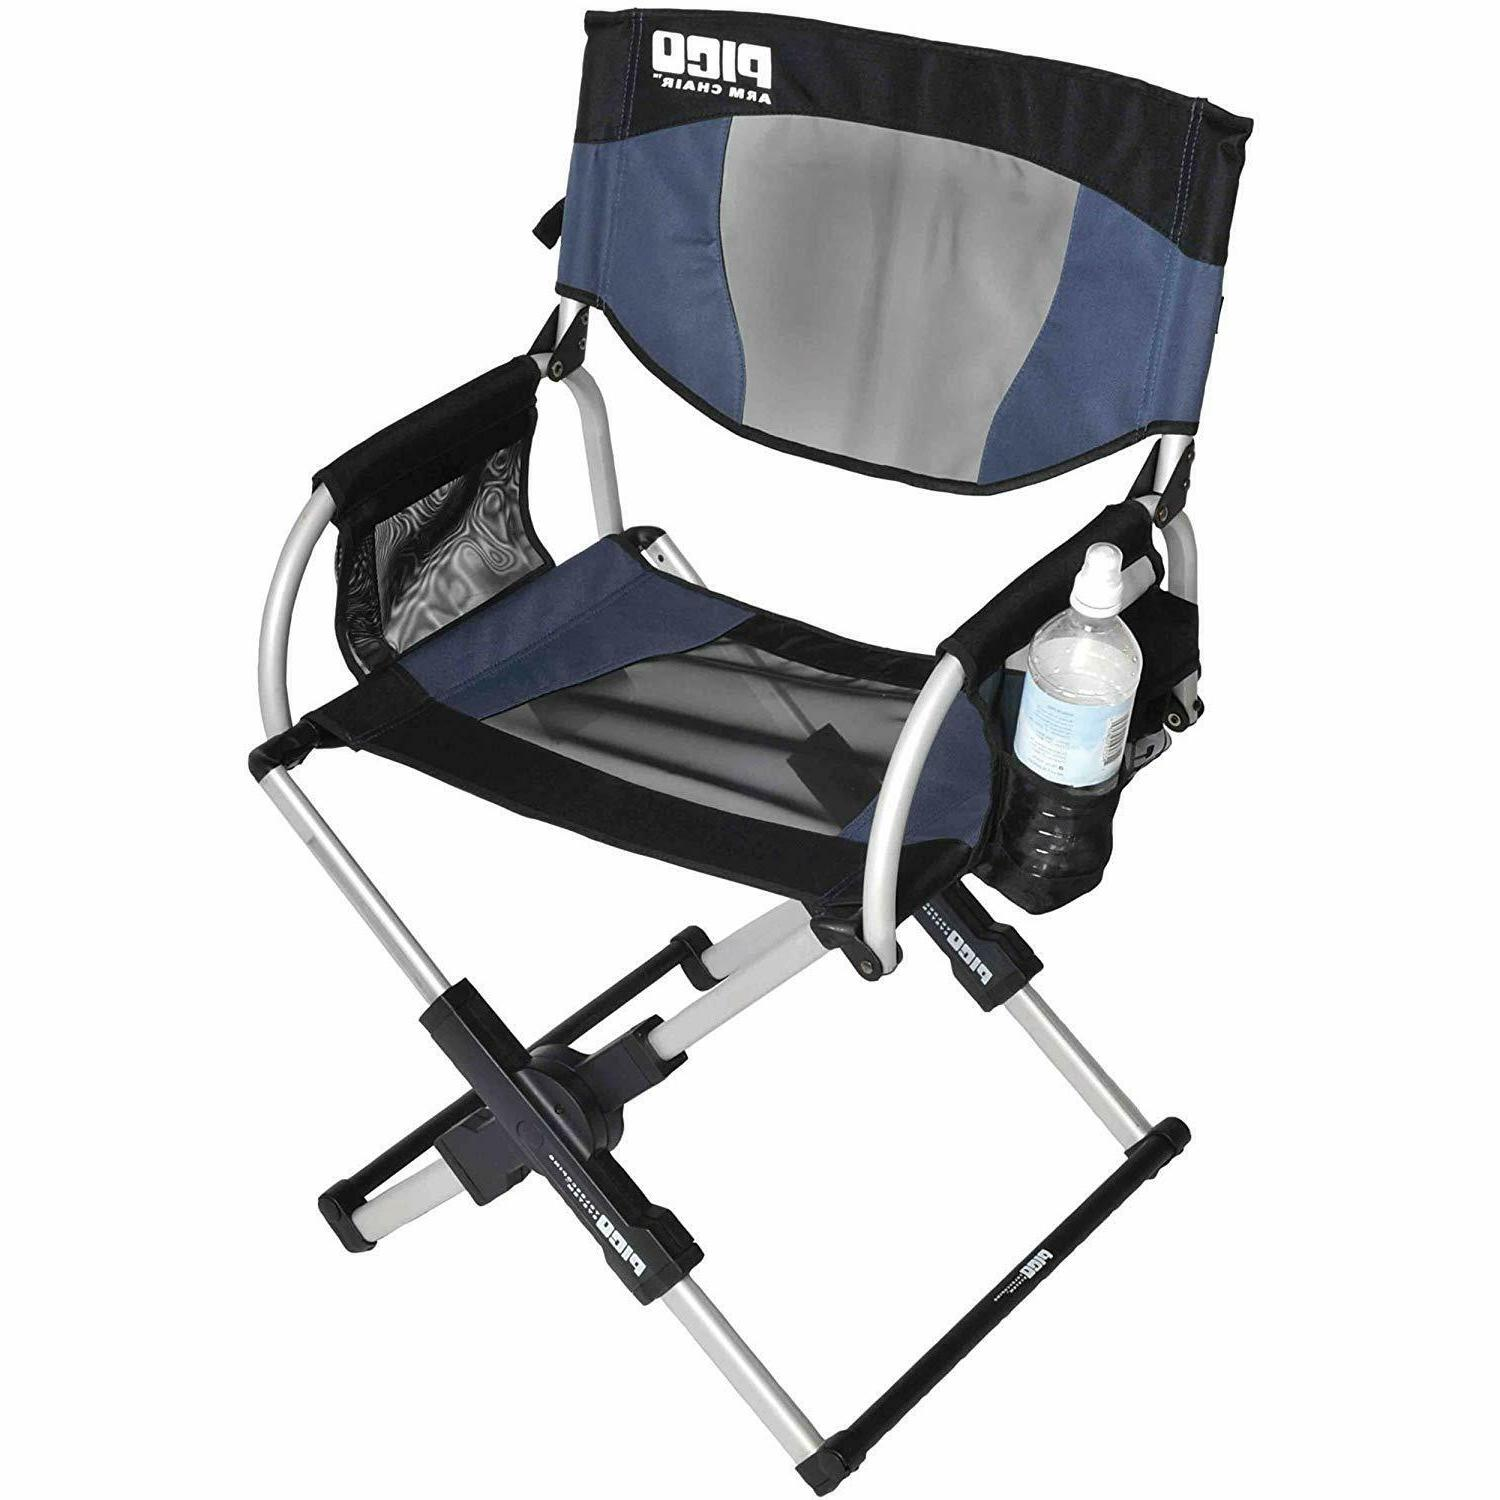 Gci Outdoor Pico Chair Compact Folding Collapsible Portable